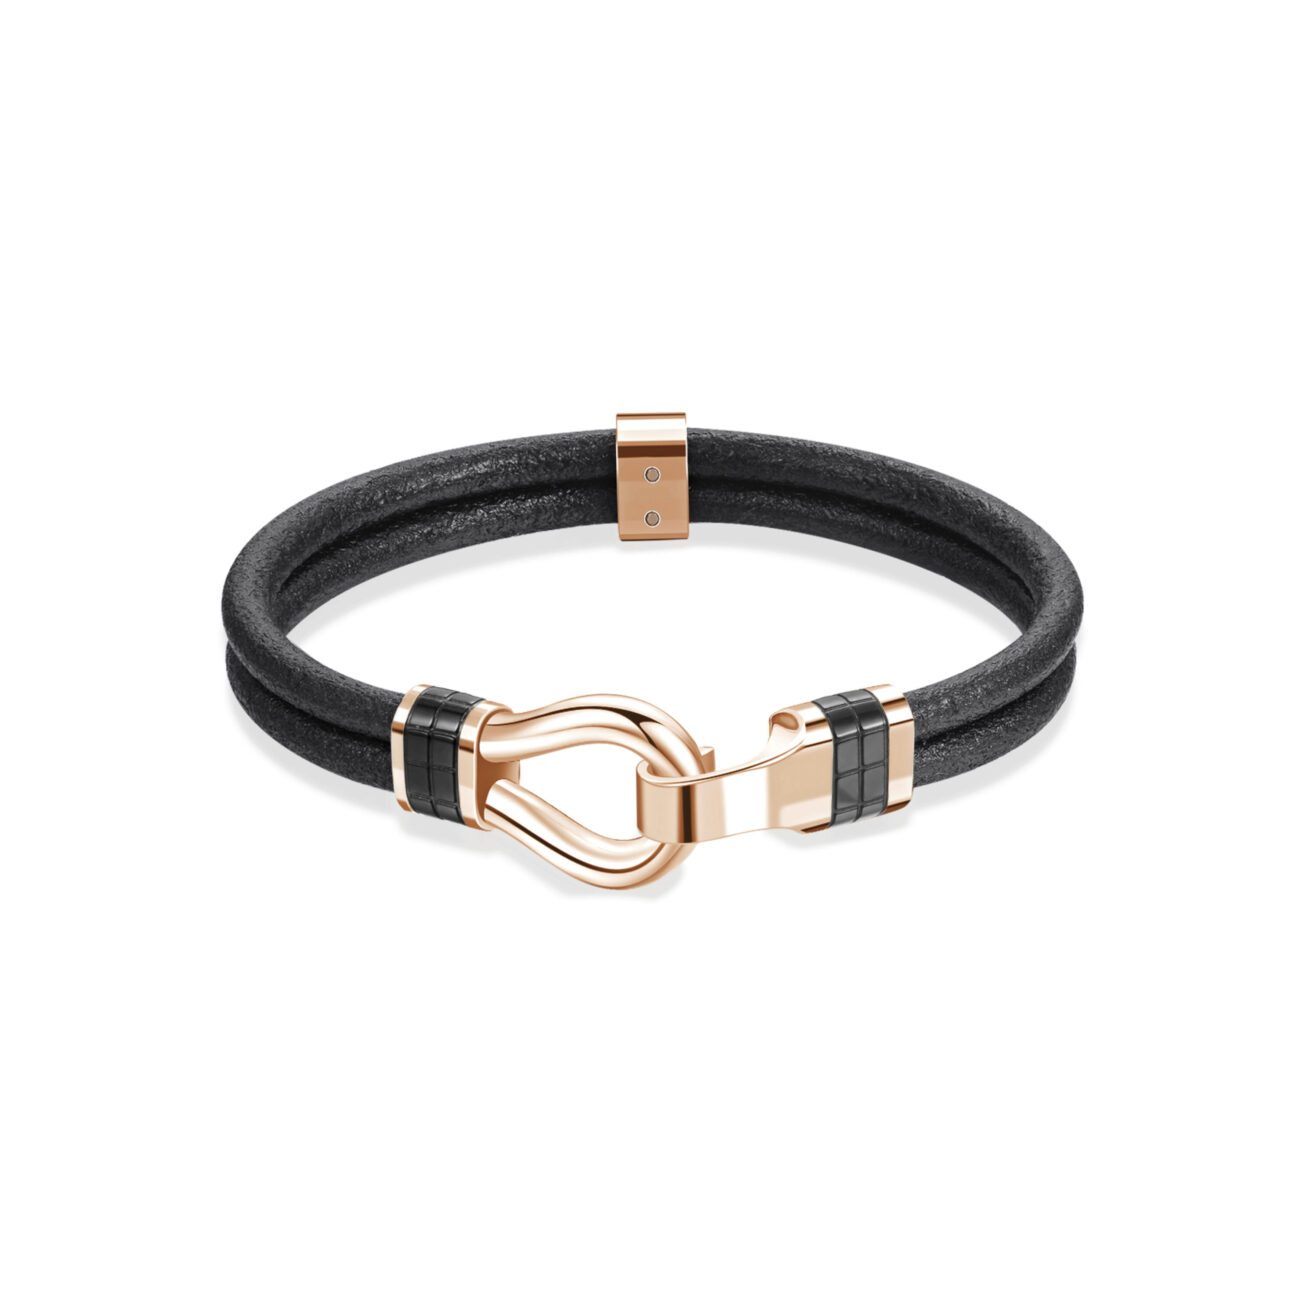 Black leather bracelet and details with gun and rose gold pvd